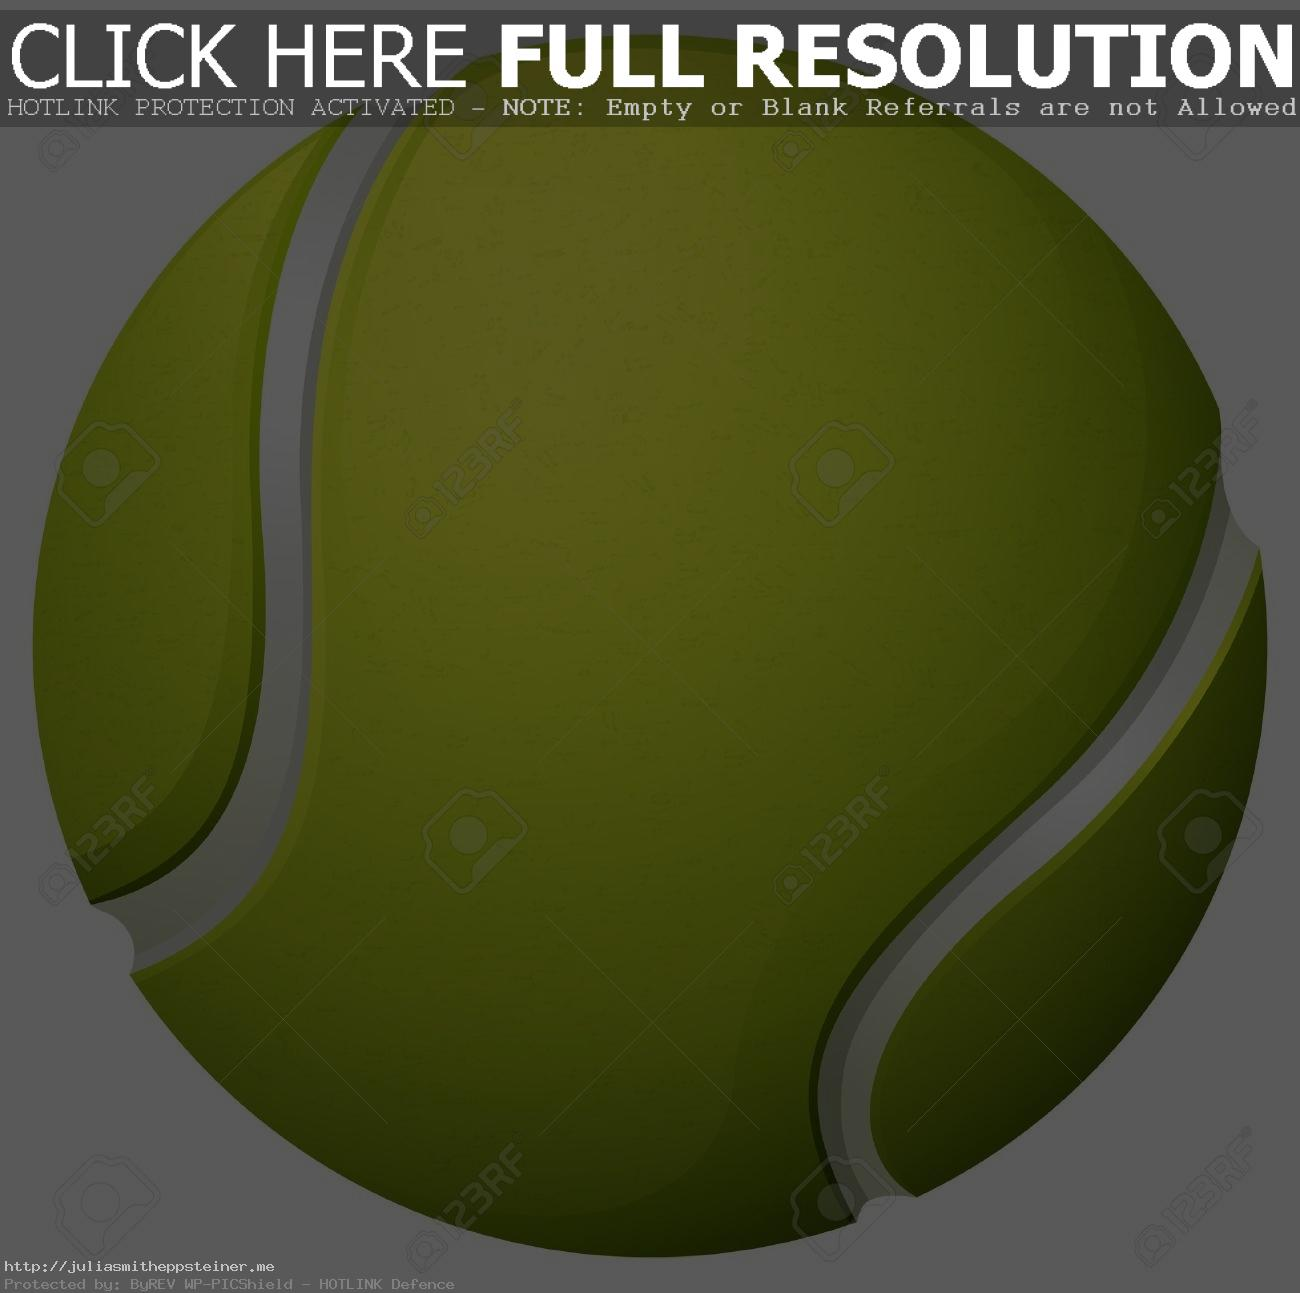 32 677 Tennis Ball Stock Illustrations Cliparts And Royalty Free  Outstanding Clipart